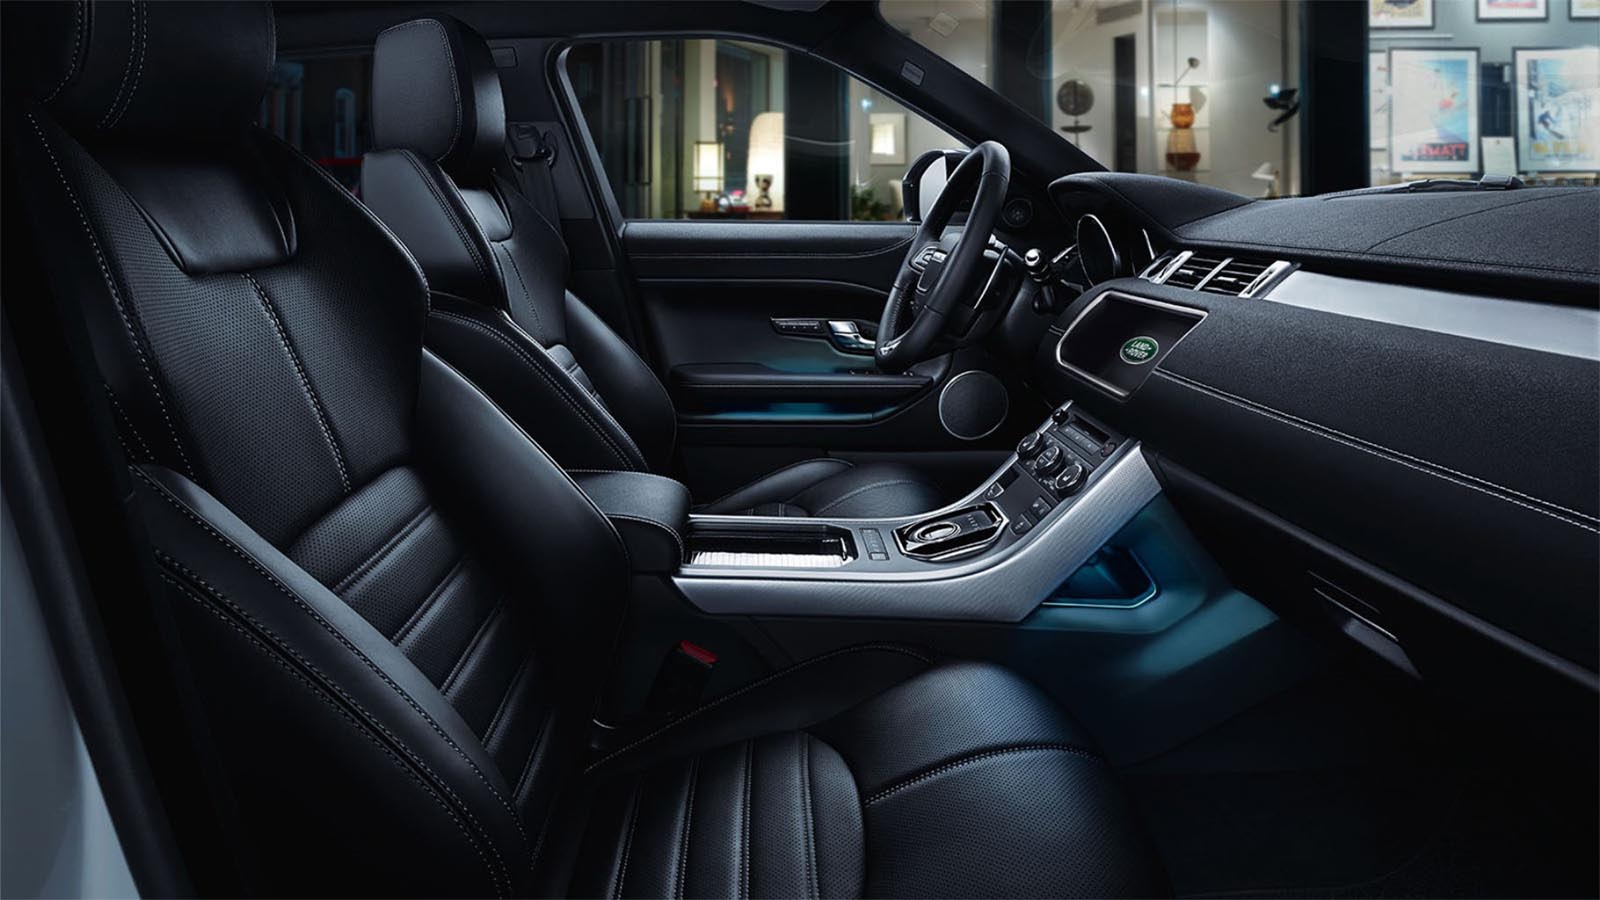 Range Rover Evoque's steering wheel and elegant interior design. 19MY Shown.